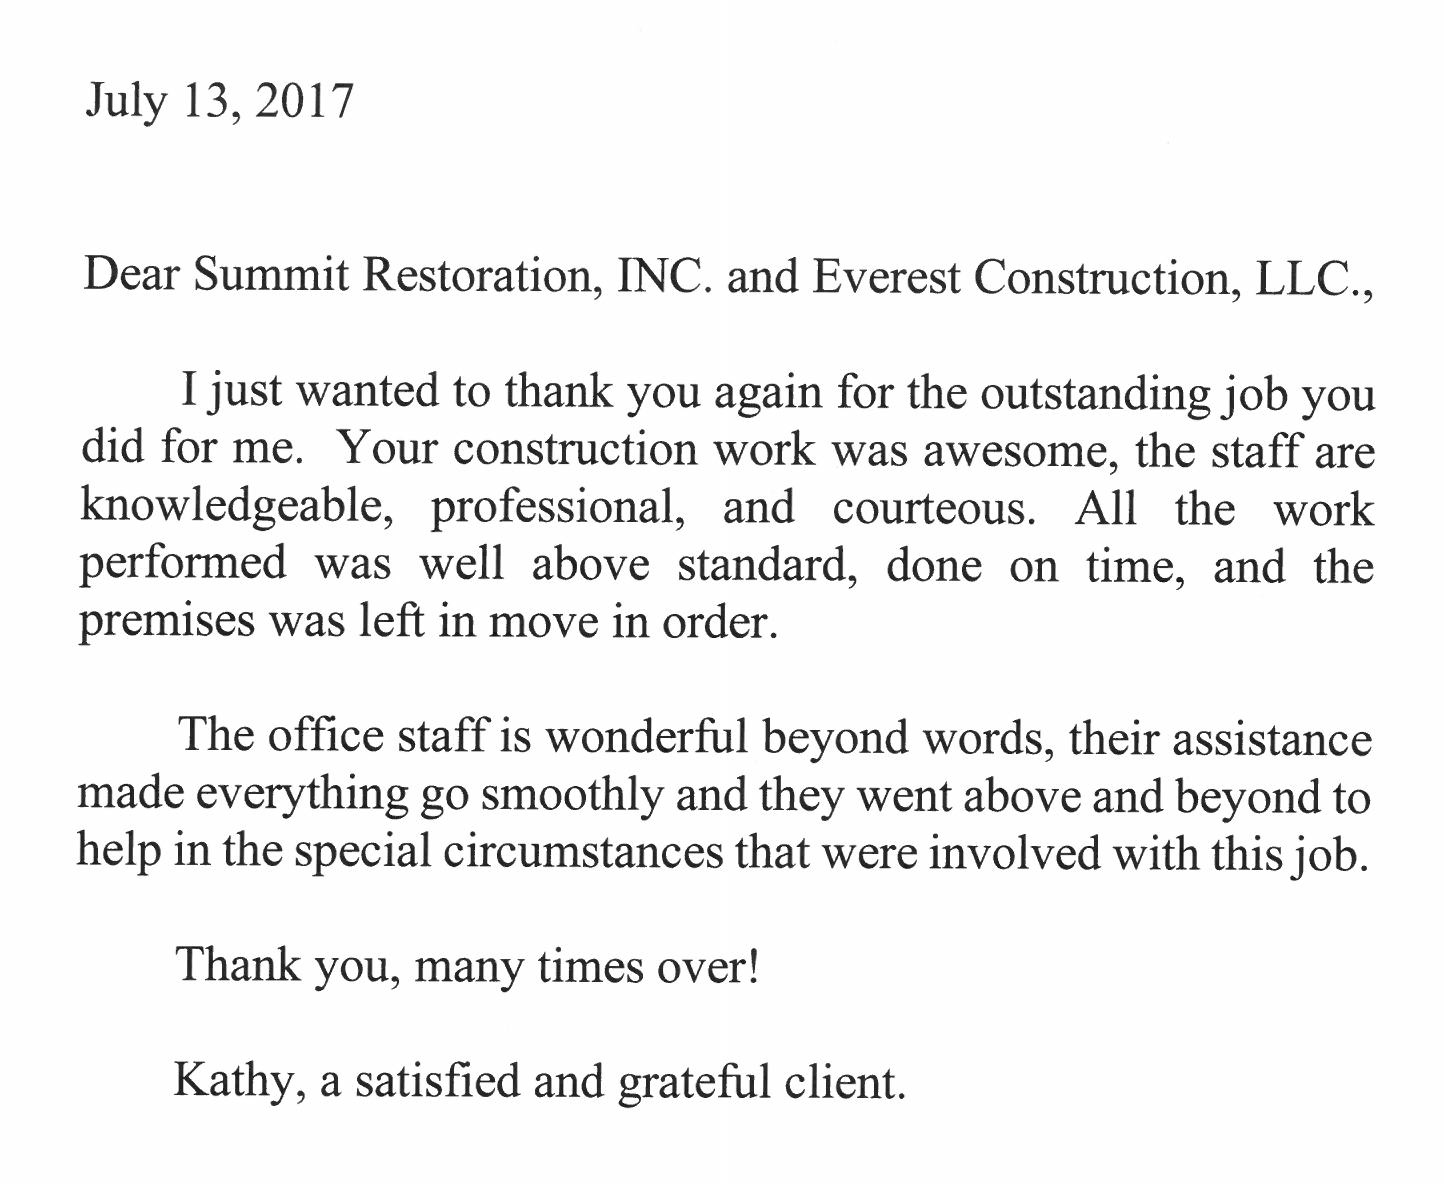 Kathy Halowell satisfied client